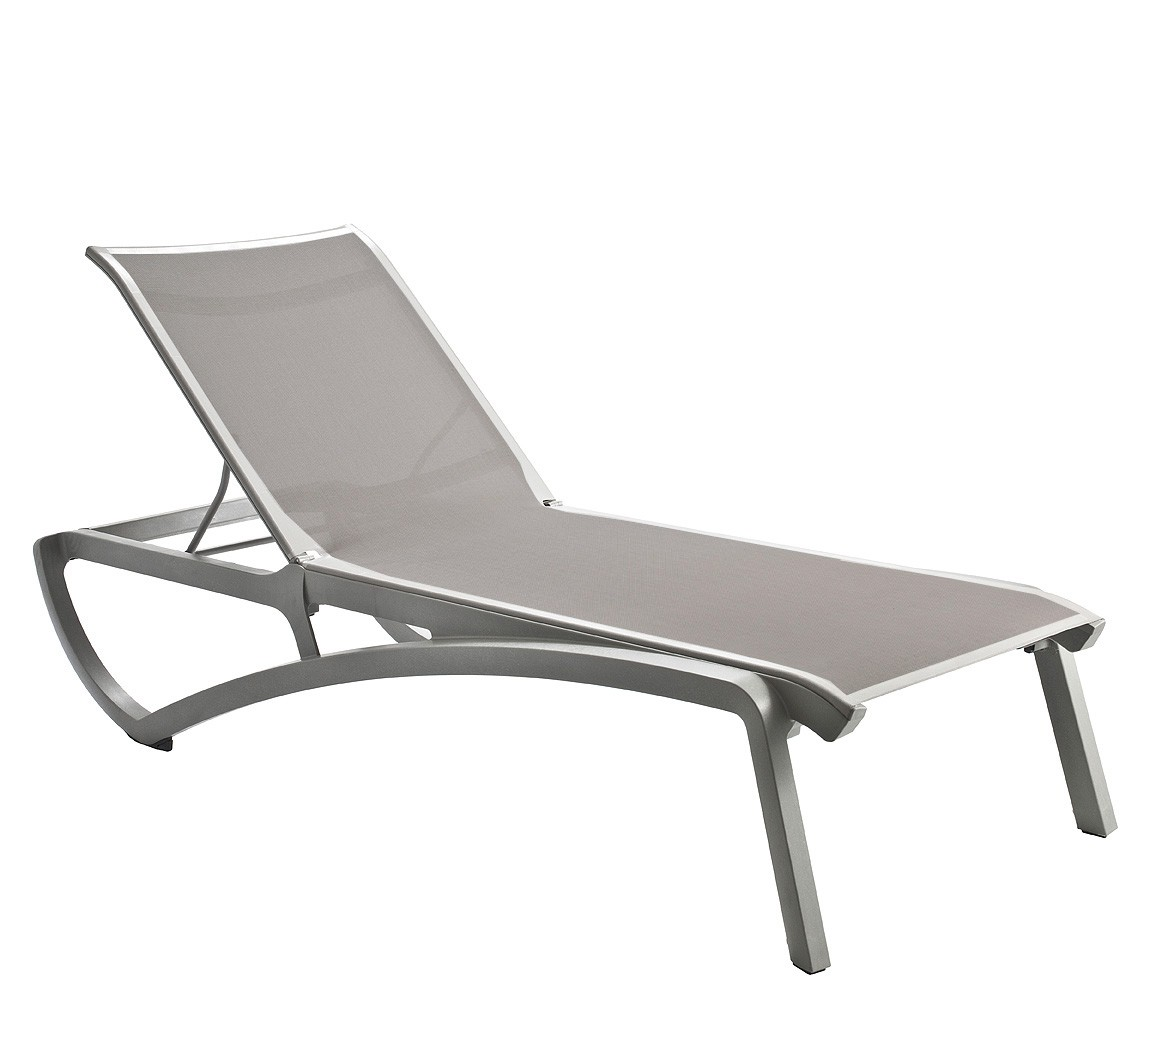 Chaise lounger chair